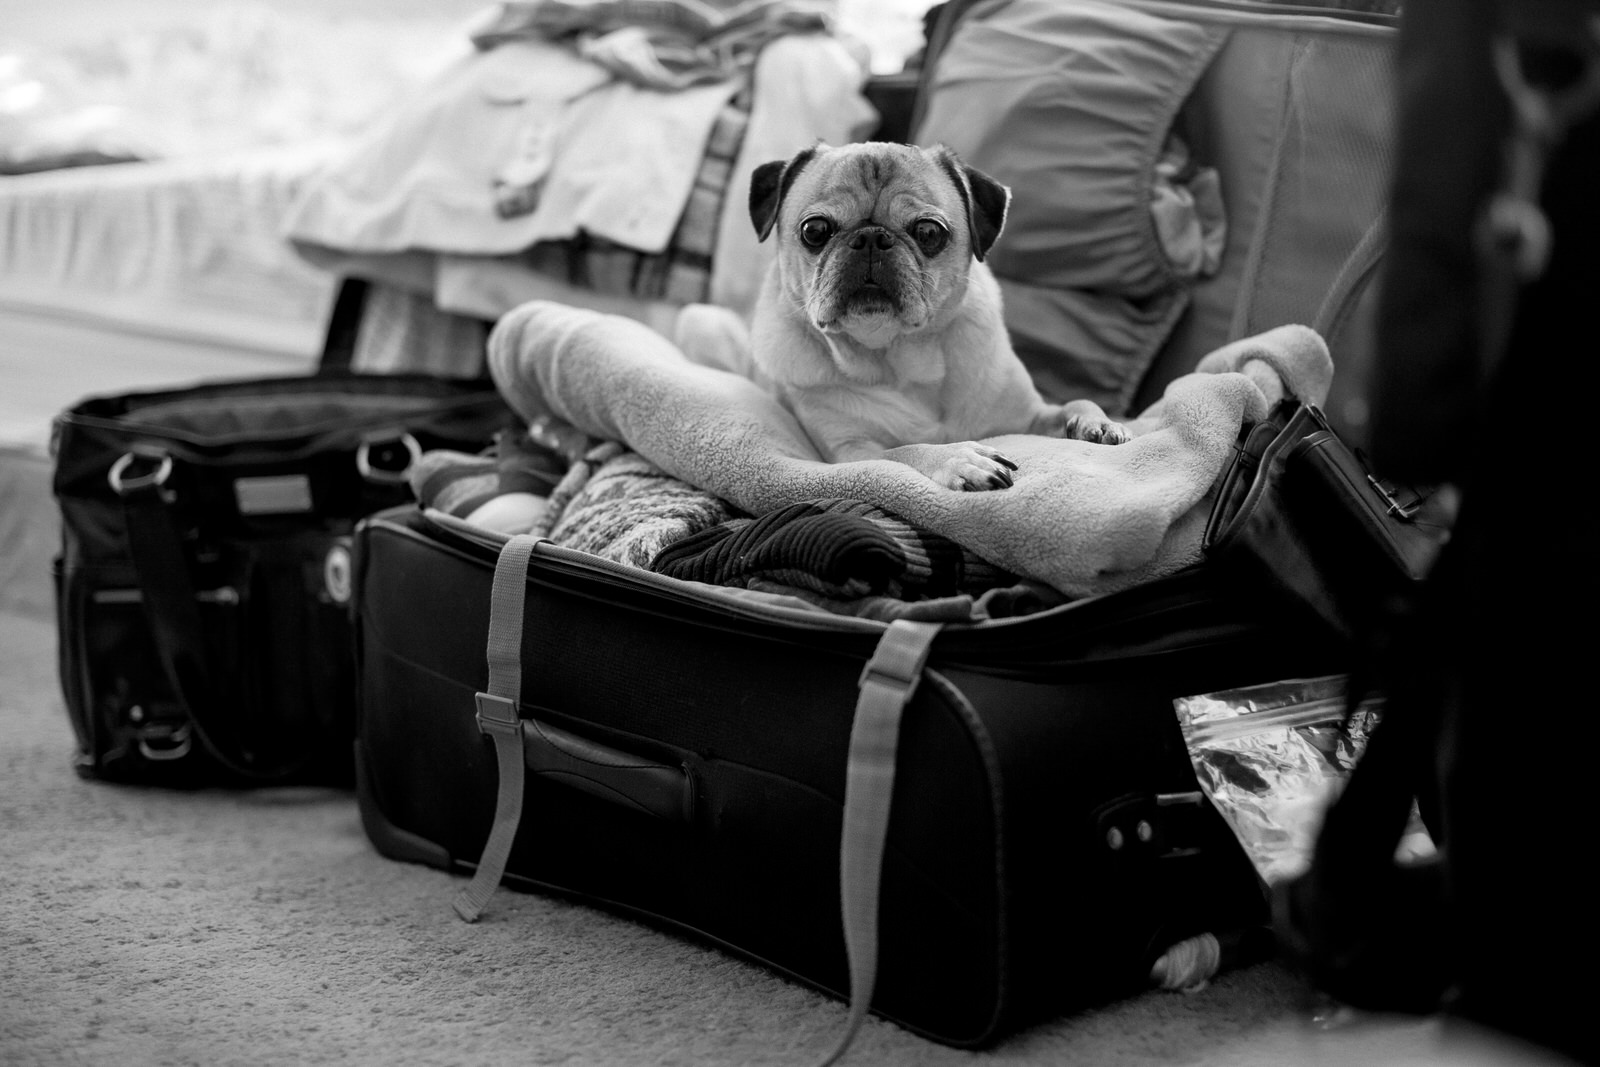 pug_in_my_suitcase_black_and_white.jpg